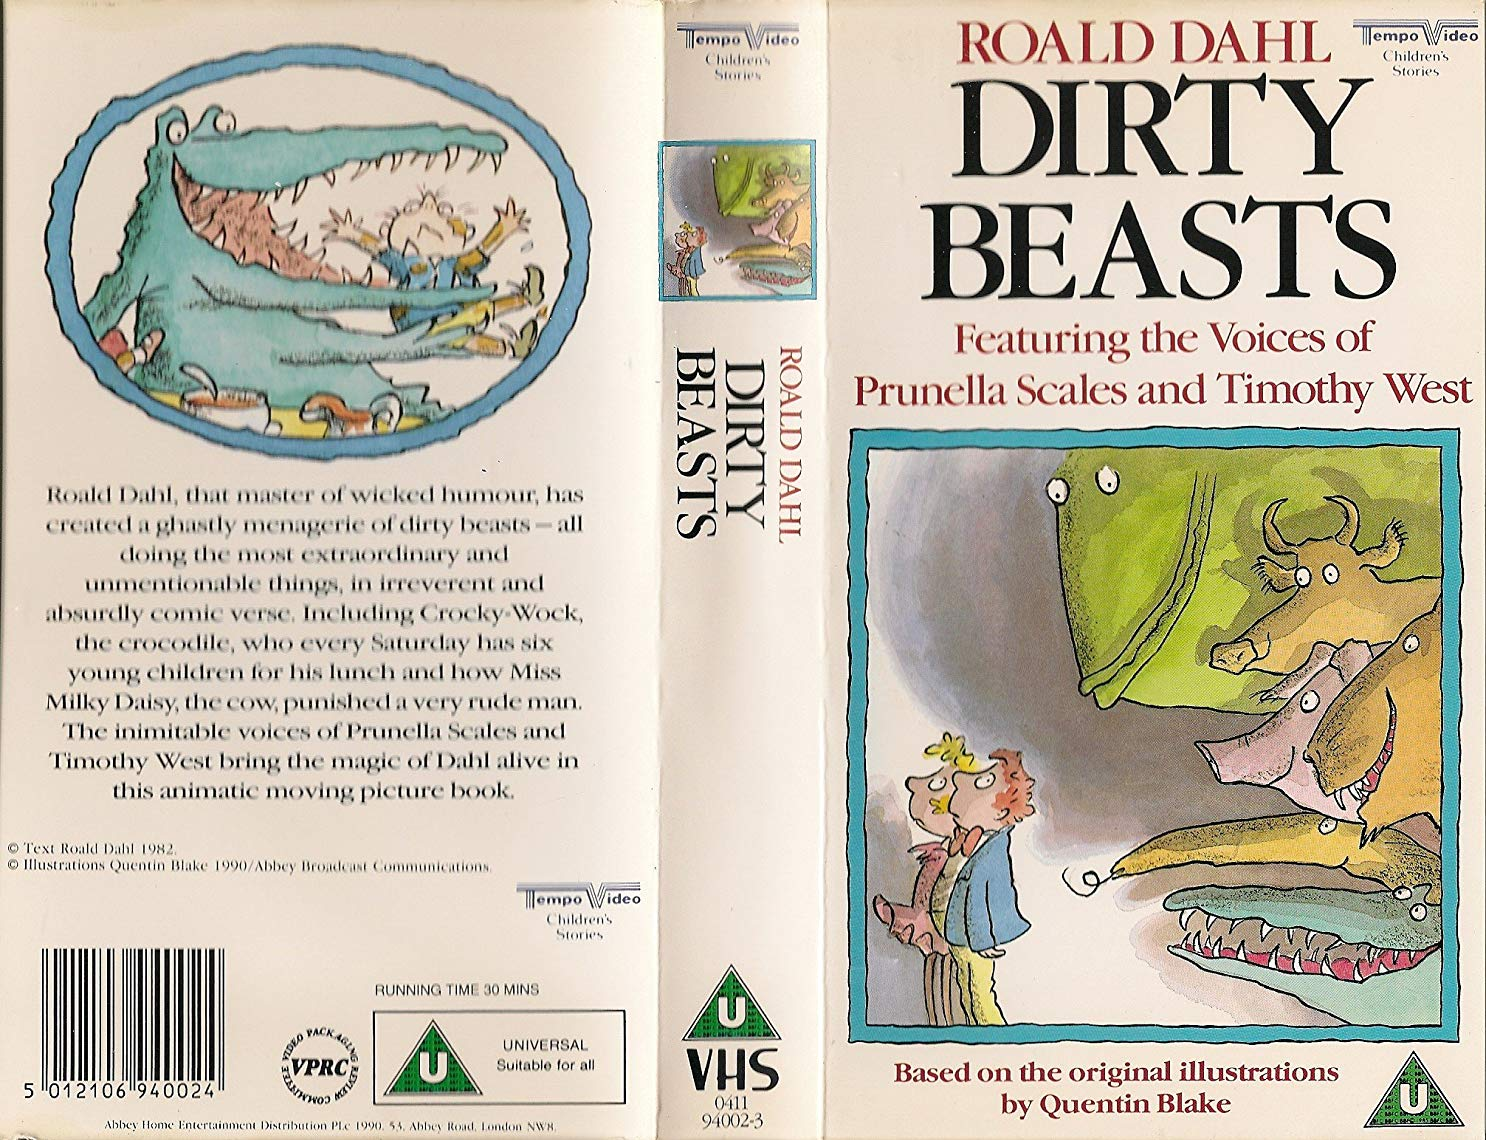 Roald Dahl's Dirty Beasts